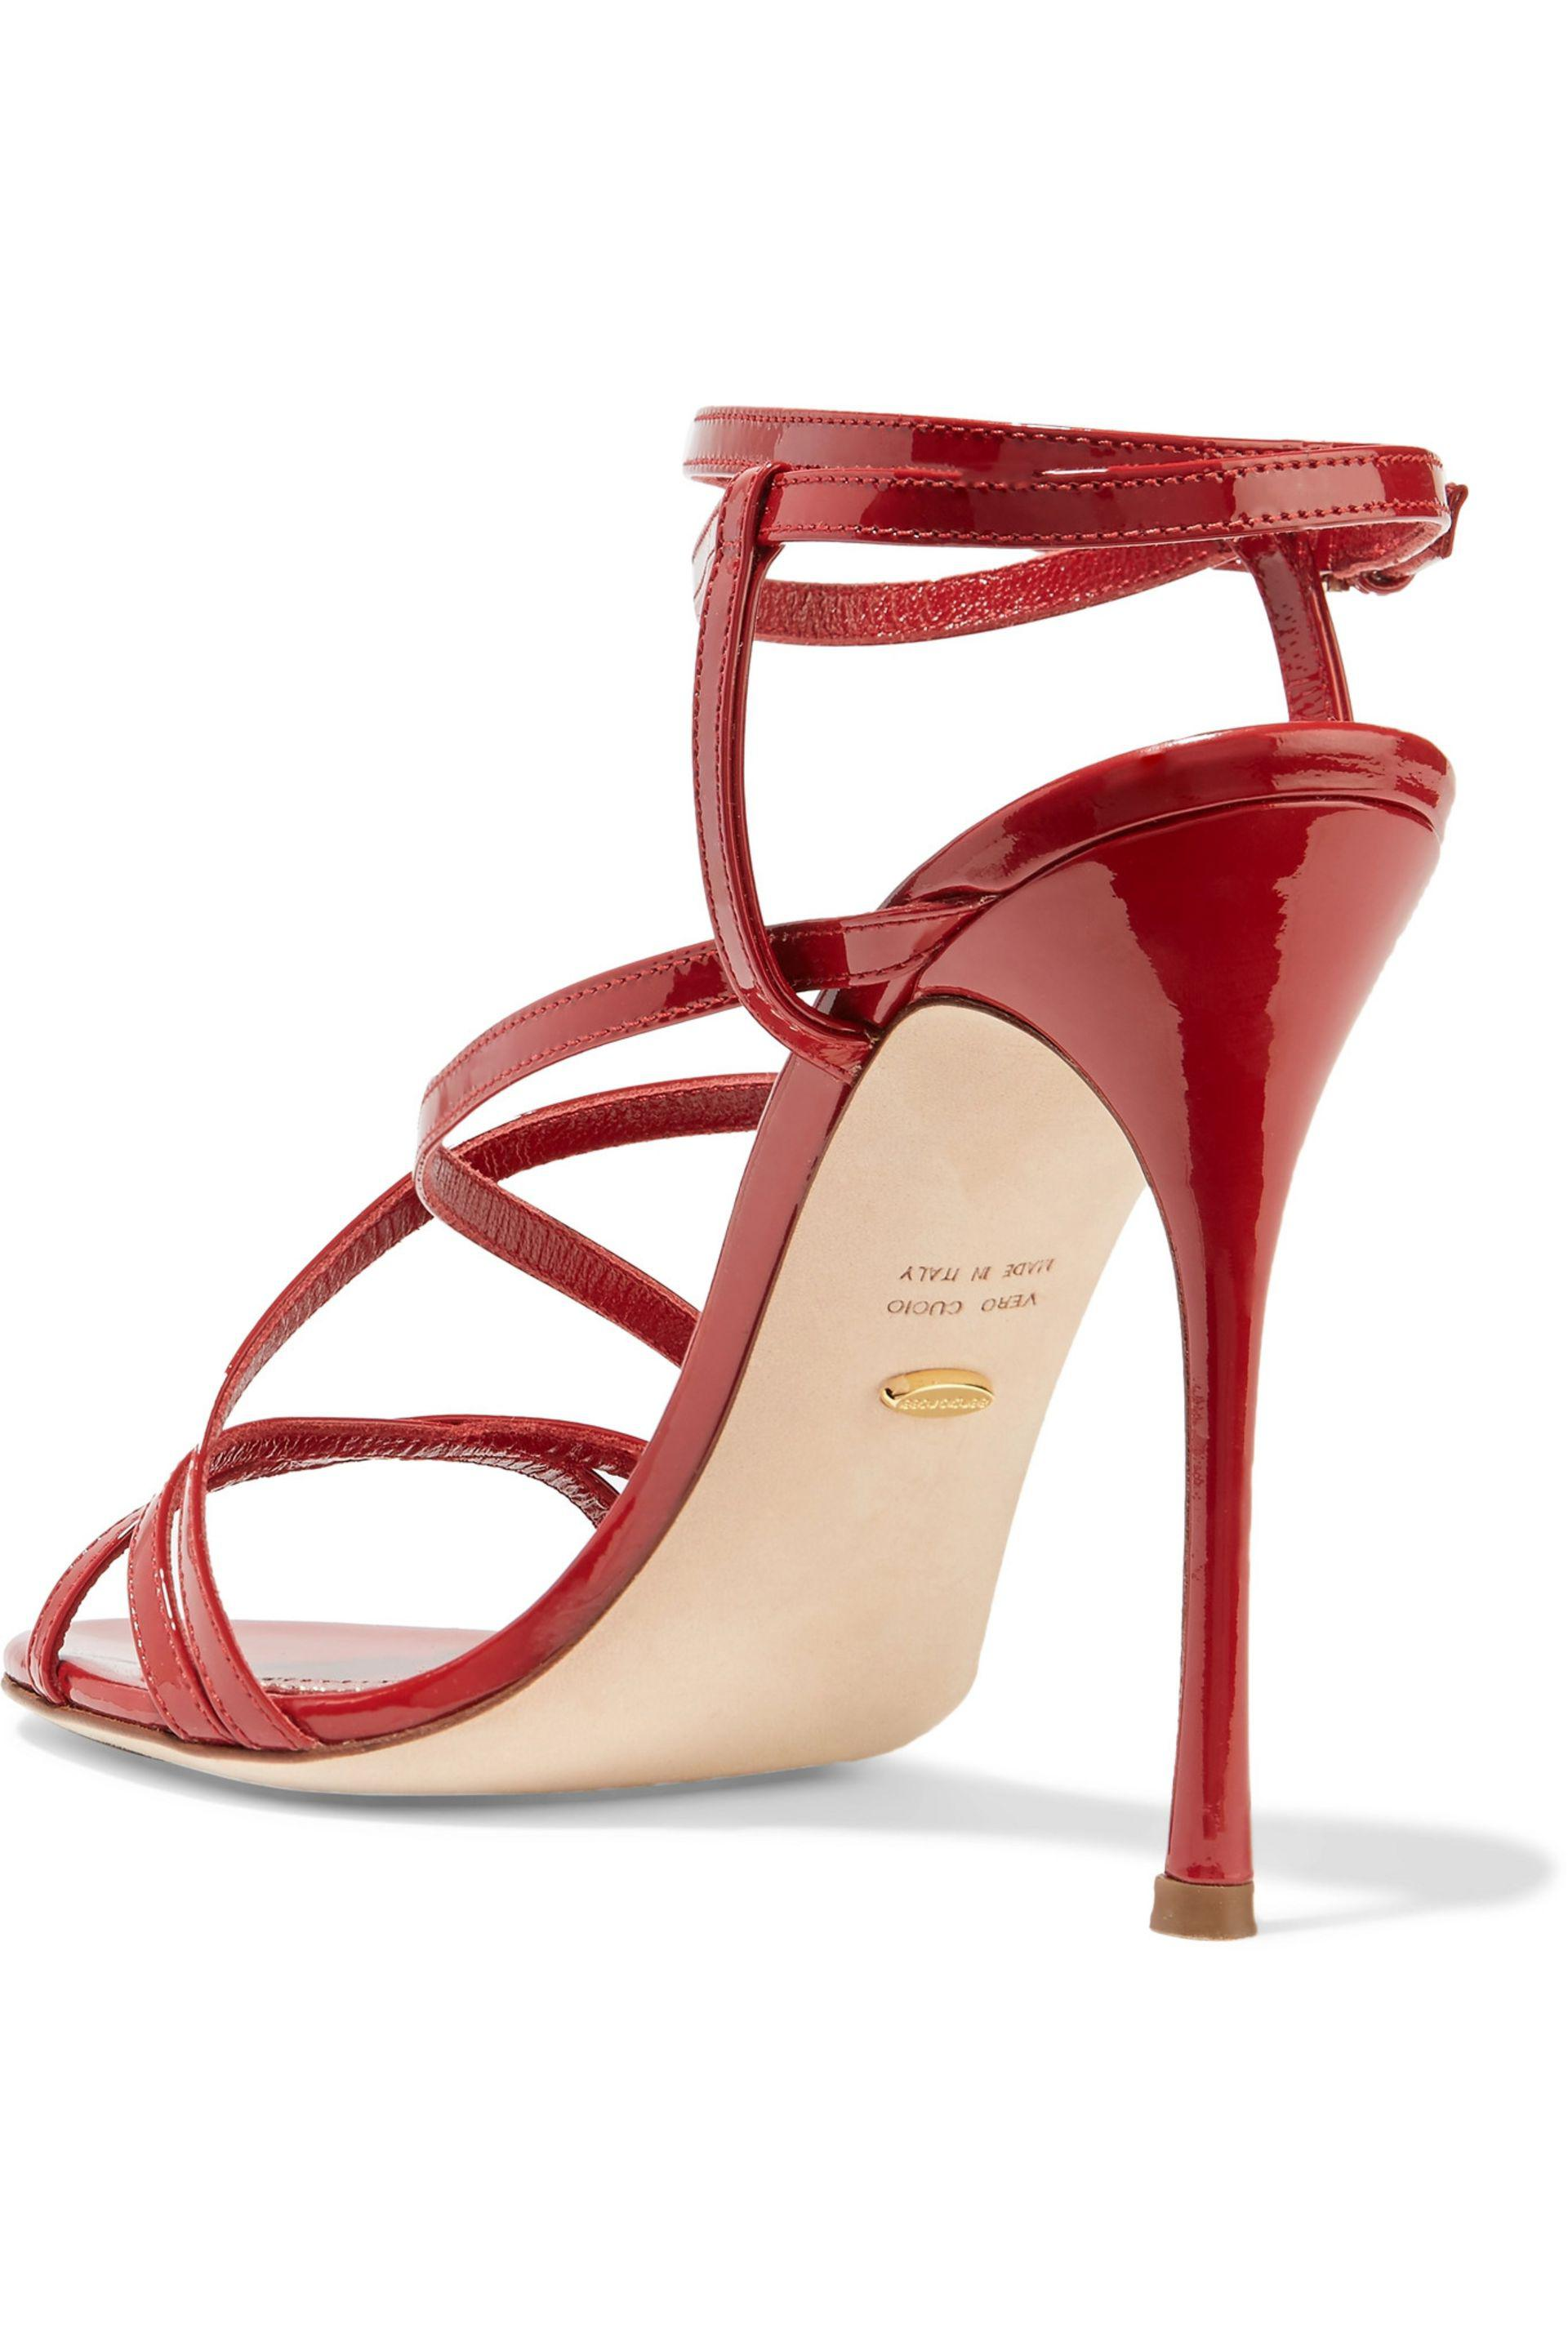 For Sale Official Site Cheap Sale New Sergio Rossi Leather Sandal Cheap Sale Sast Discount Get Authentic VD0L7G